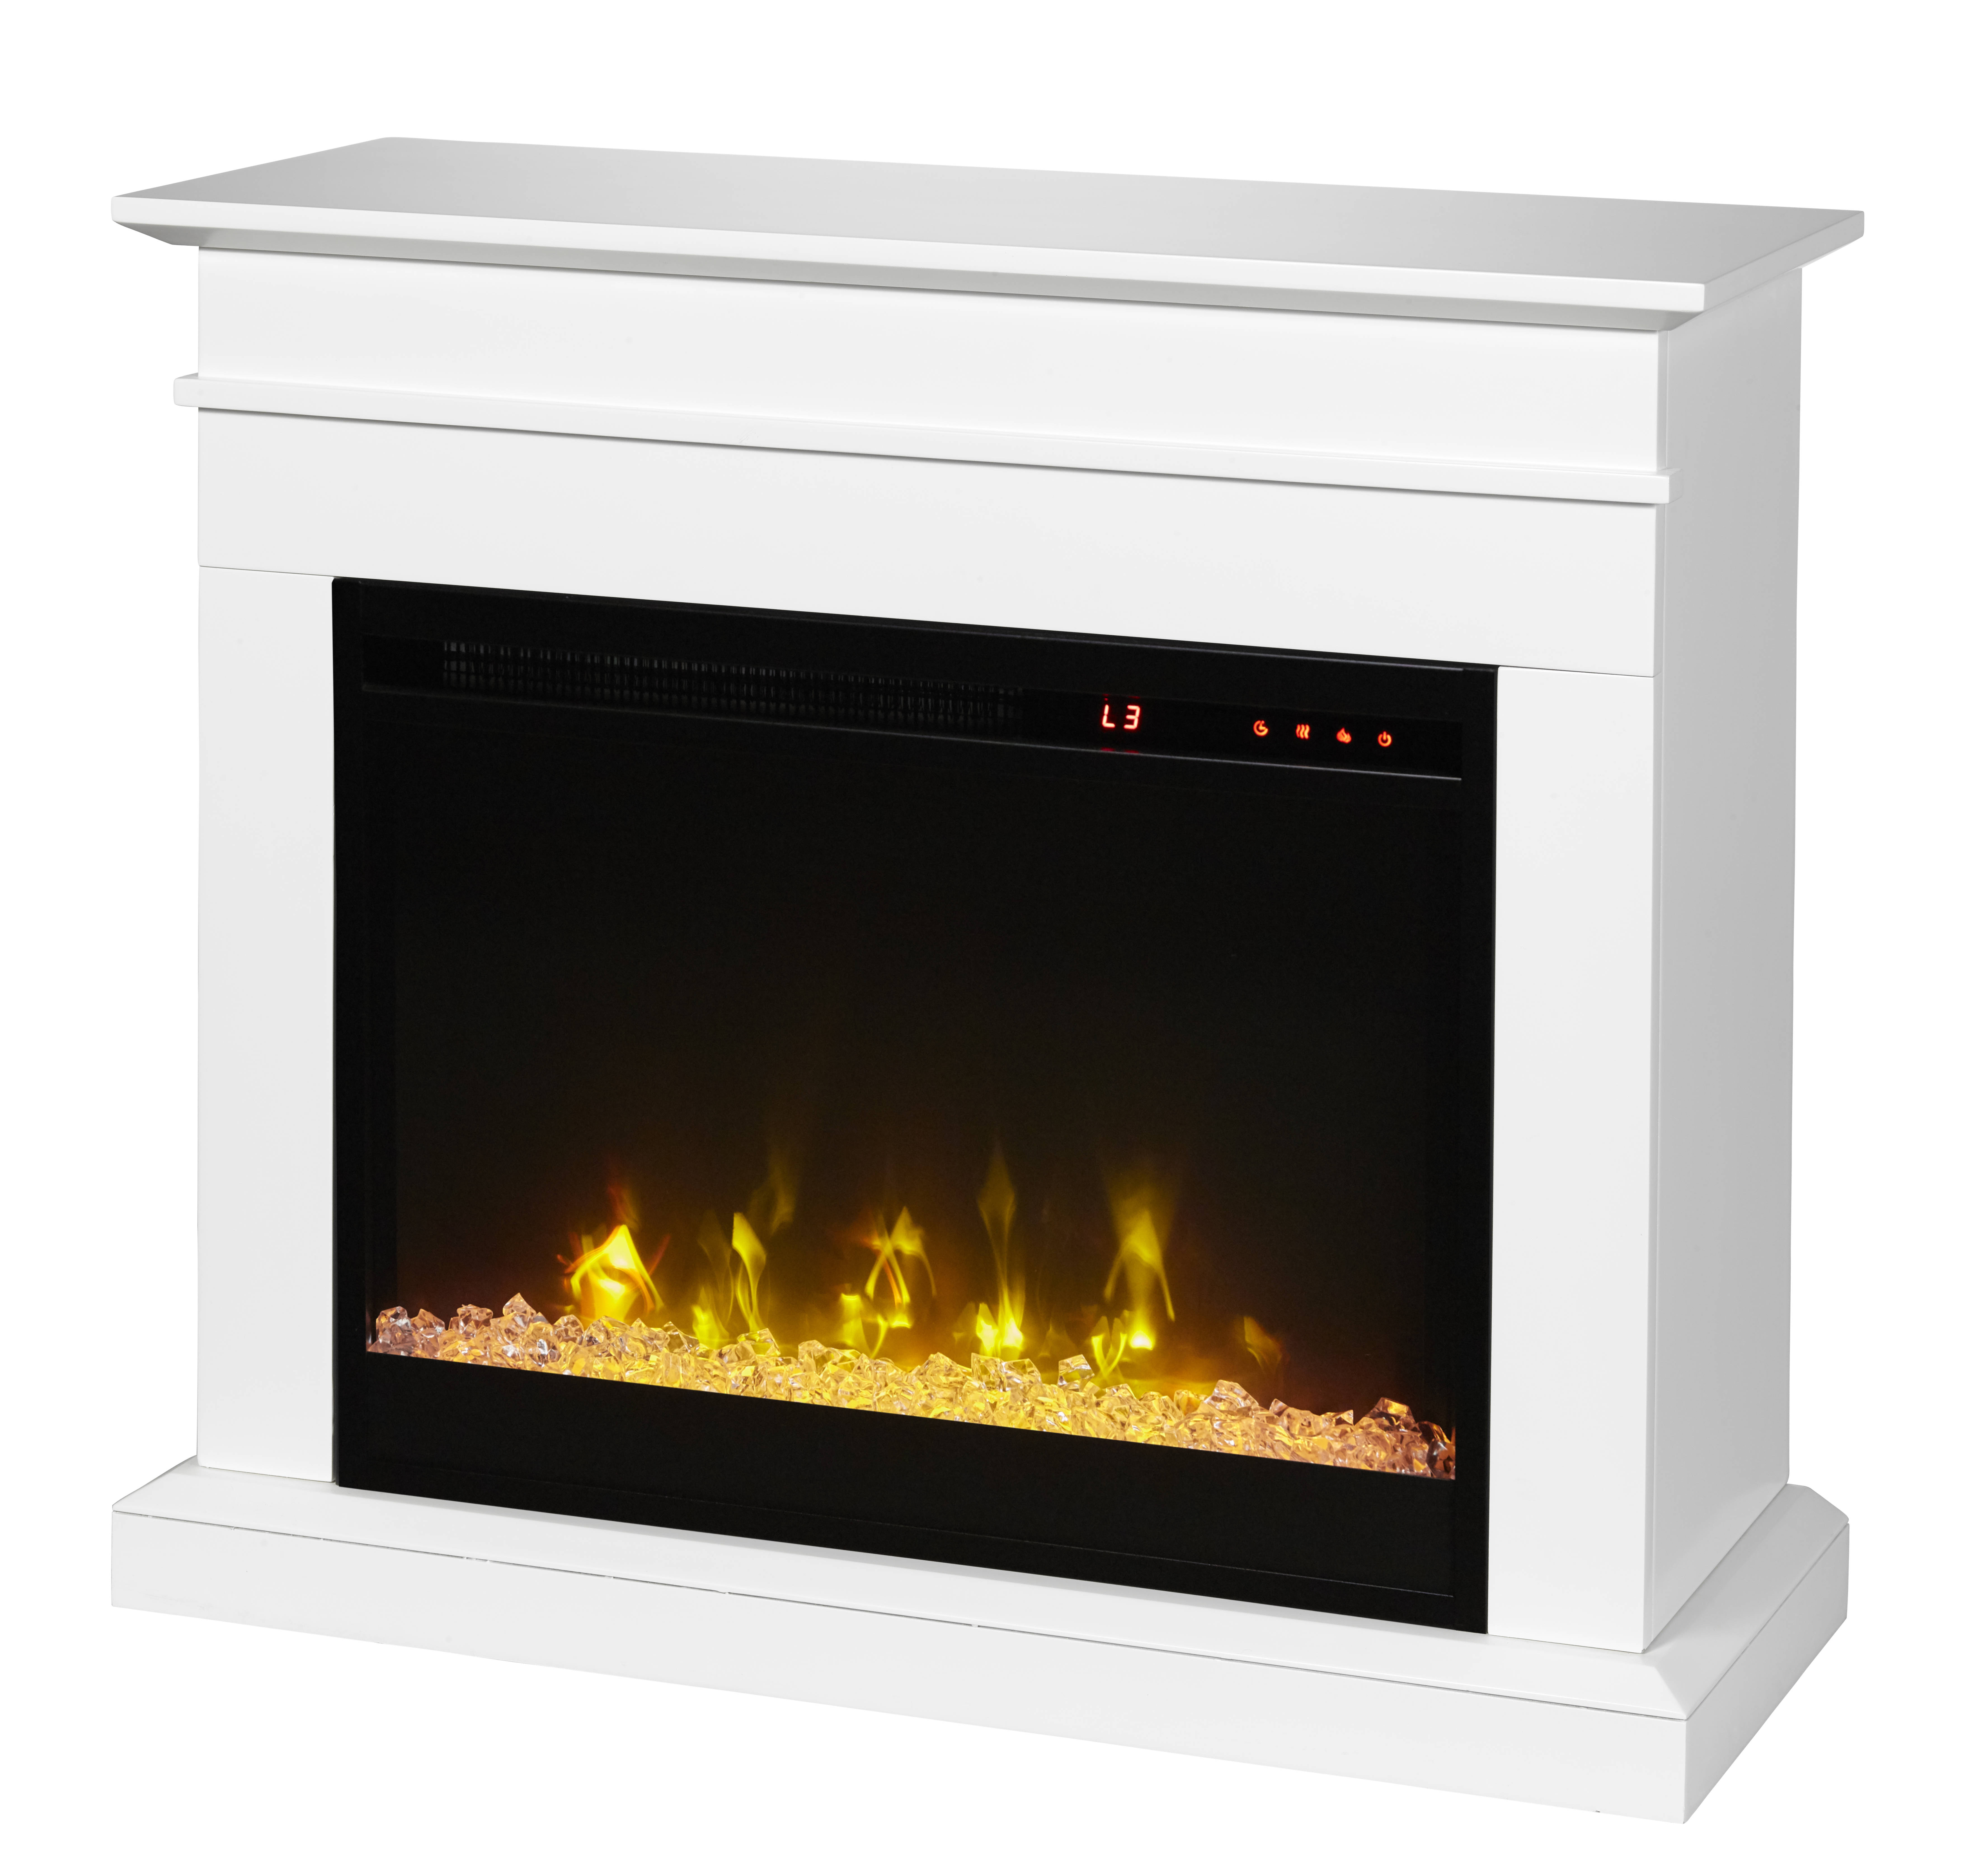 Dimplex C3 Jasmine White Mantel Electric Fireplace The Classy Home